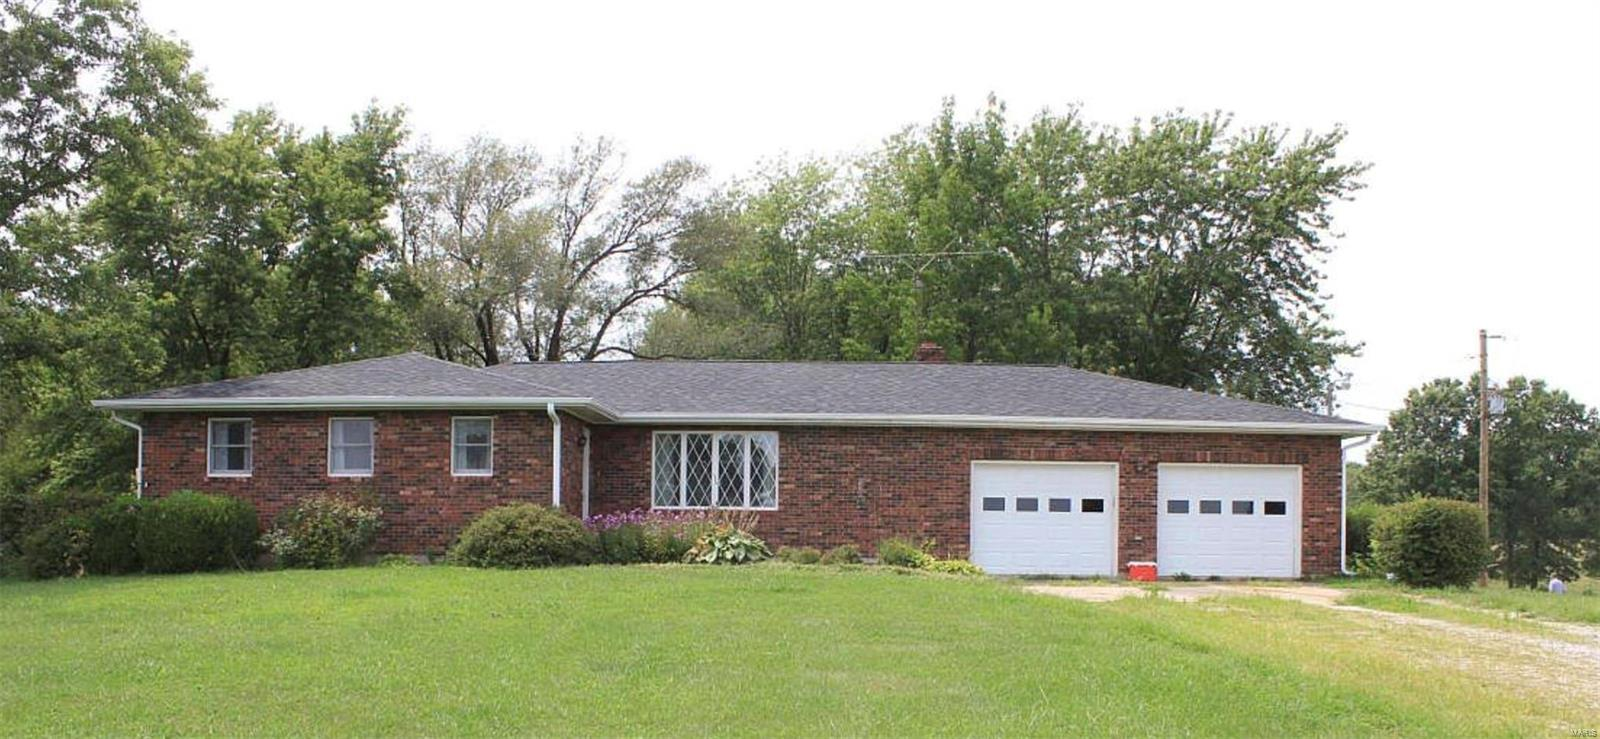 18123 Audrain Rd 949 Property Photo - Mexico, MO real estate listing